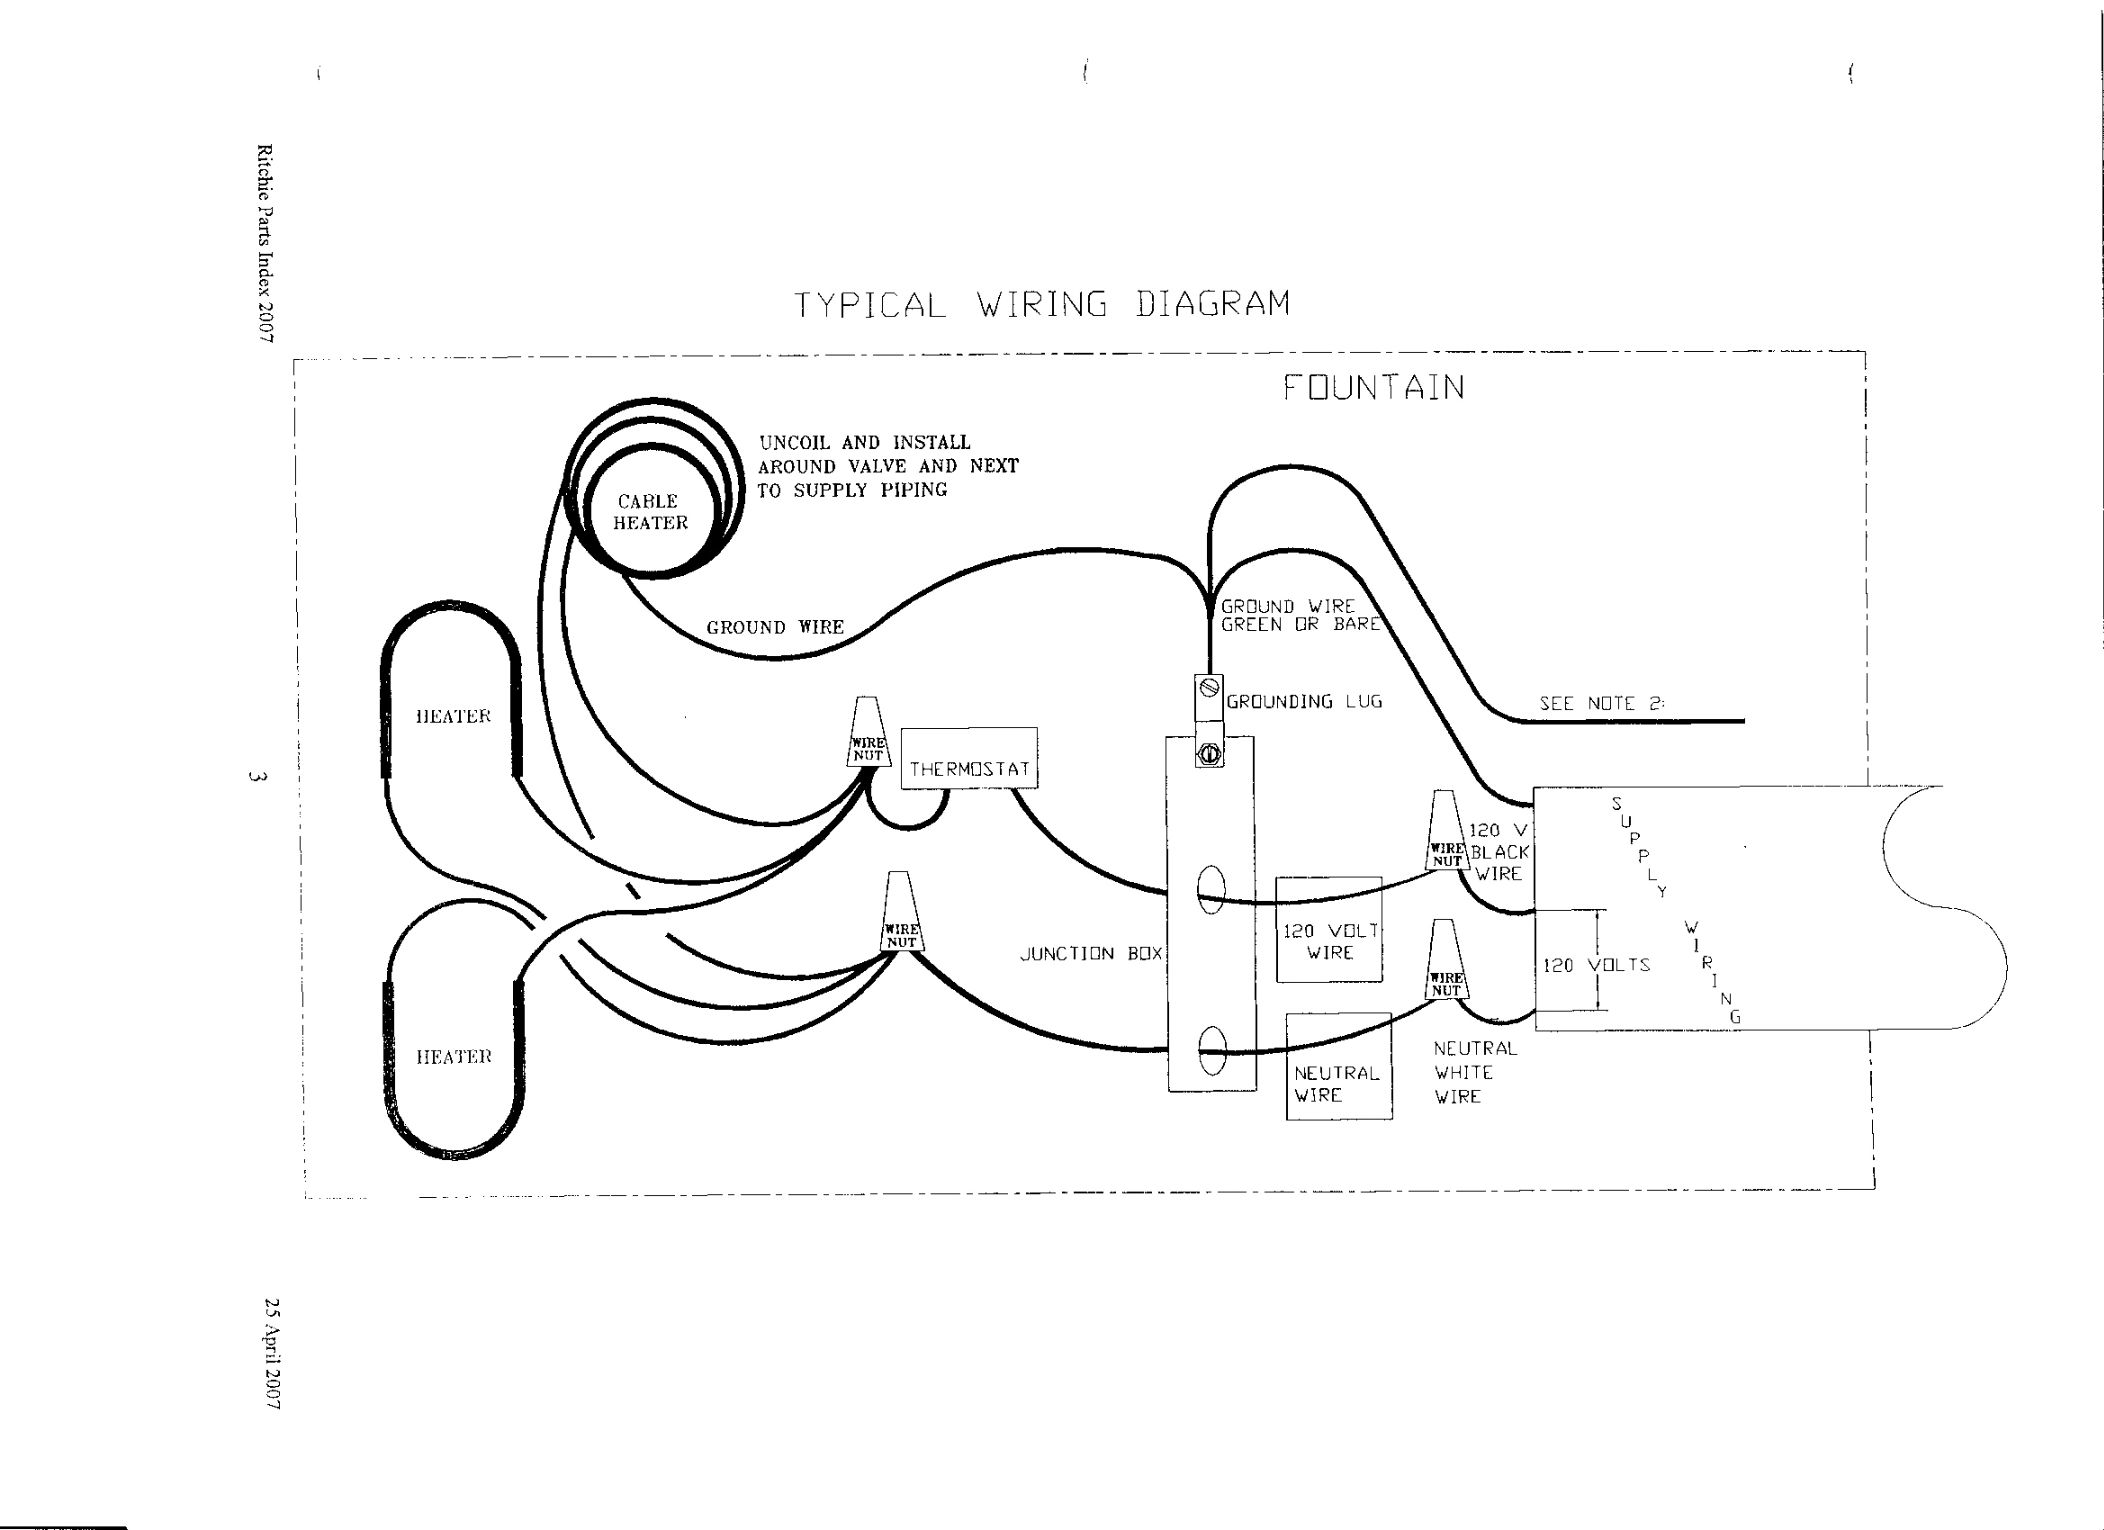 Ritchie Waterers Wiring Diagram 31 Images Typical House Colors For And Fountains Waterer At Cita